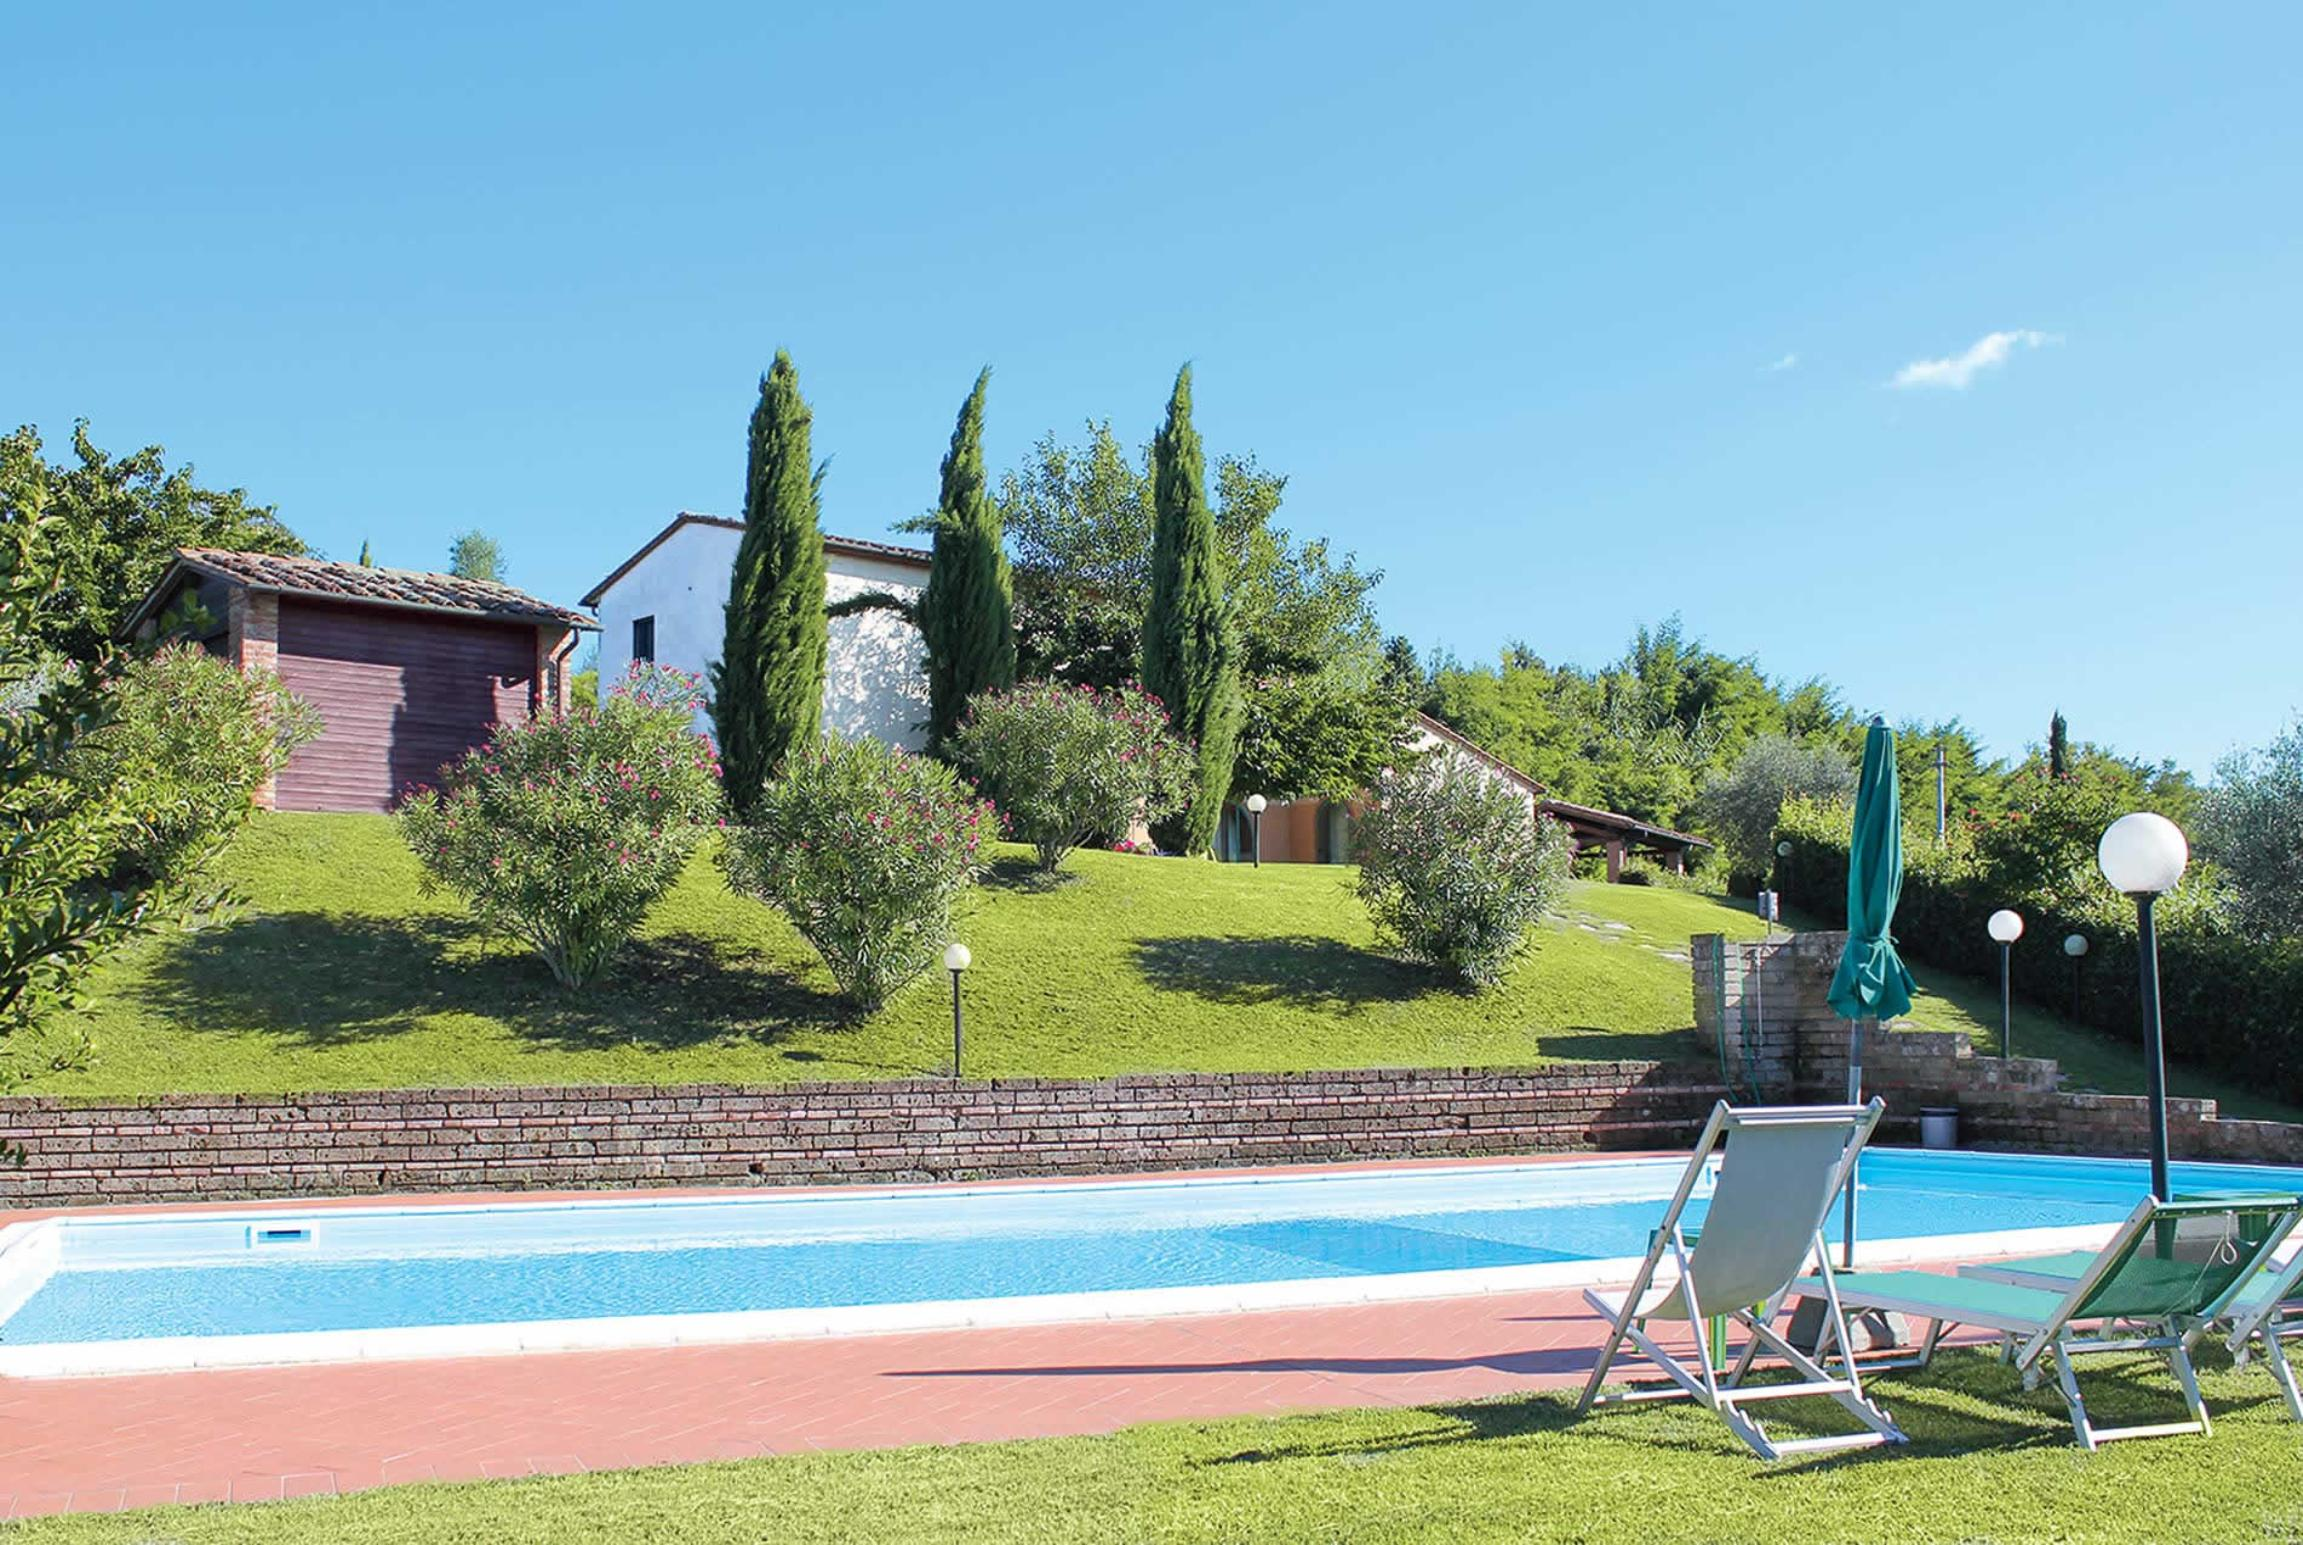 Read more about Canavetro villa